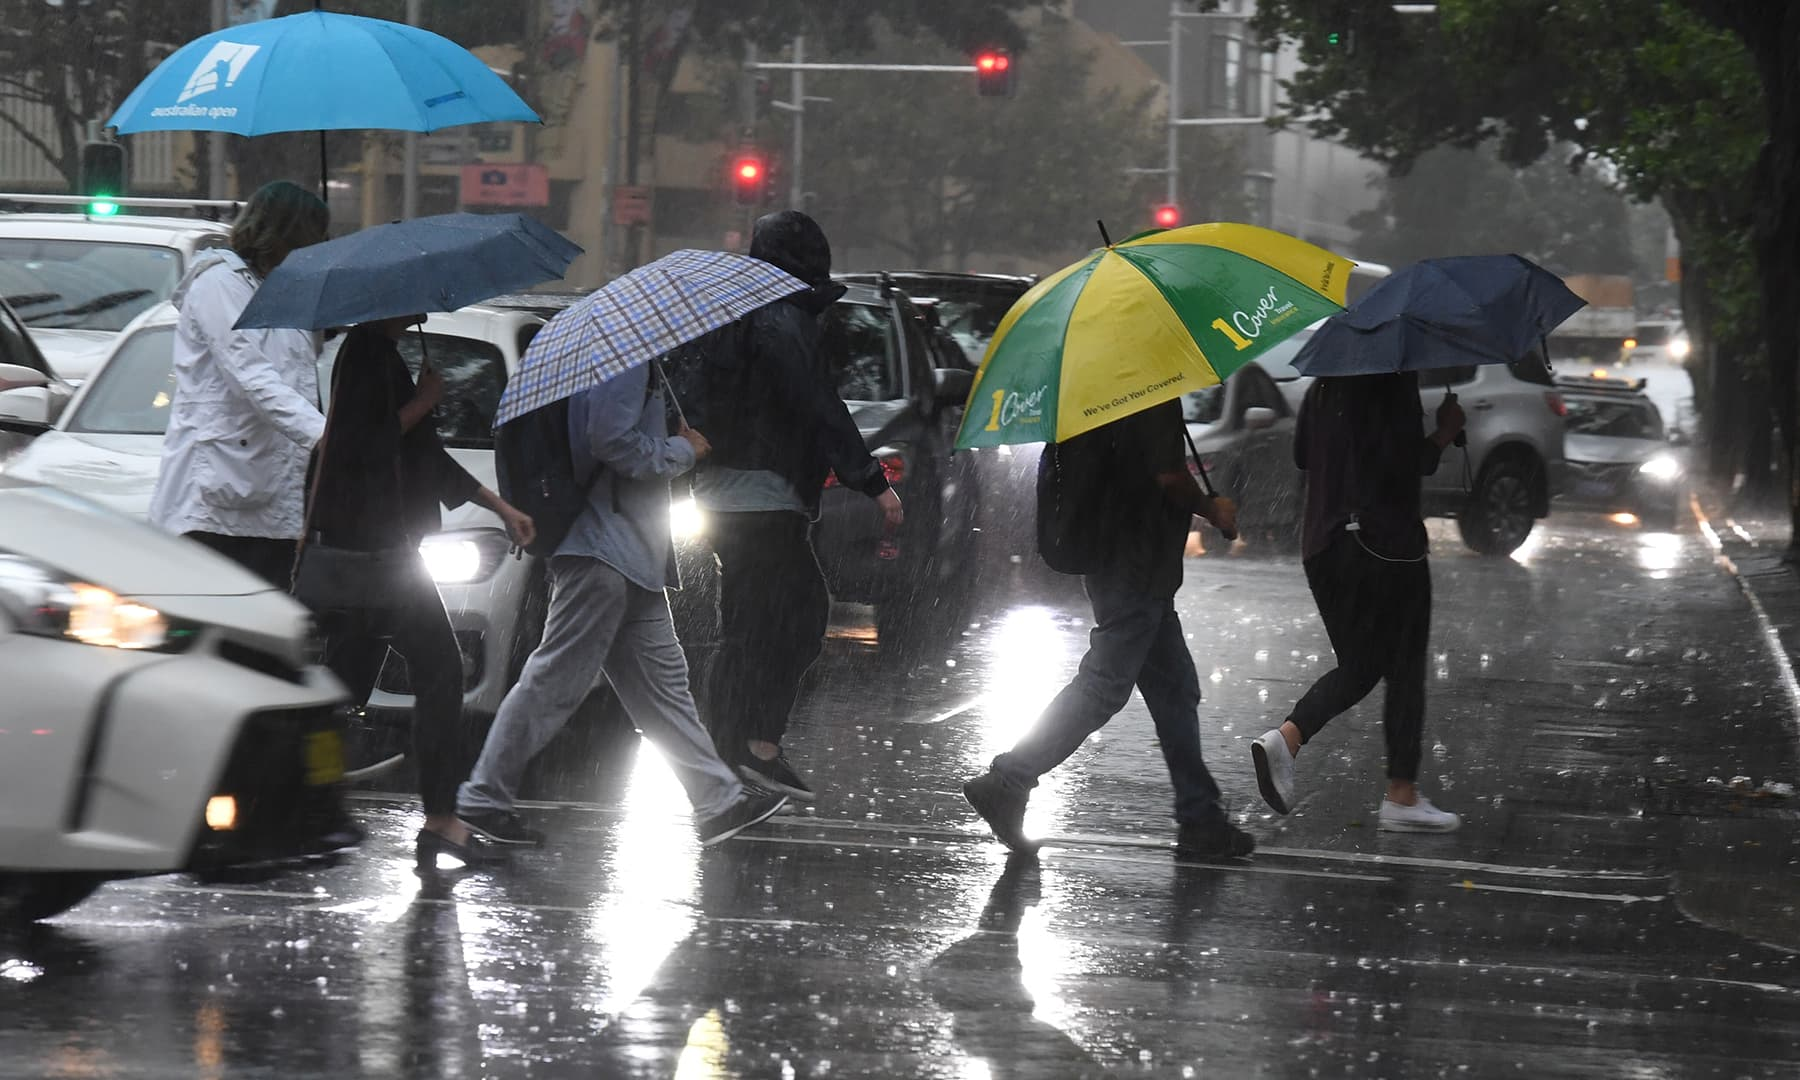 Pedestrians hold umbrellas during wet weather in Sydney on February 7. — Reuters